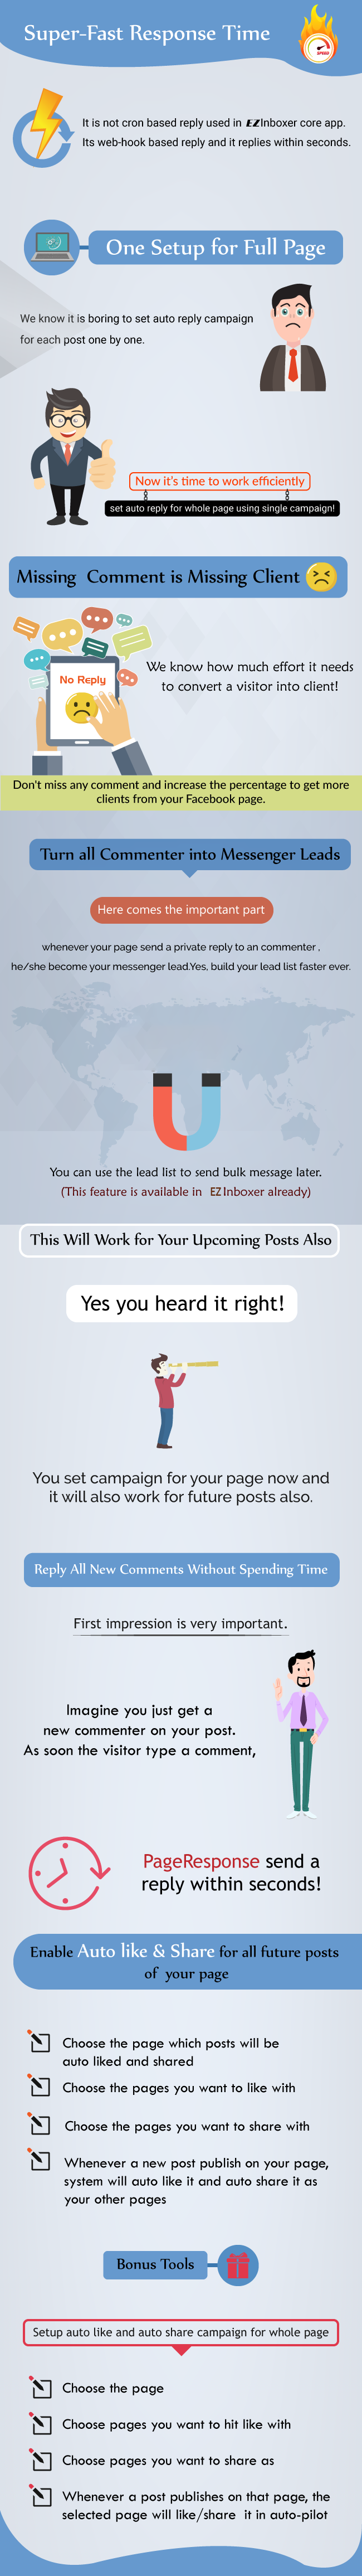 PageResponse - A EZ Inboxer Add-on : Facebook Auto Comment/Private Reply & Like/Share for Full Page - 7